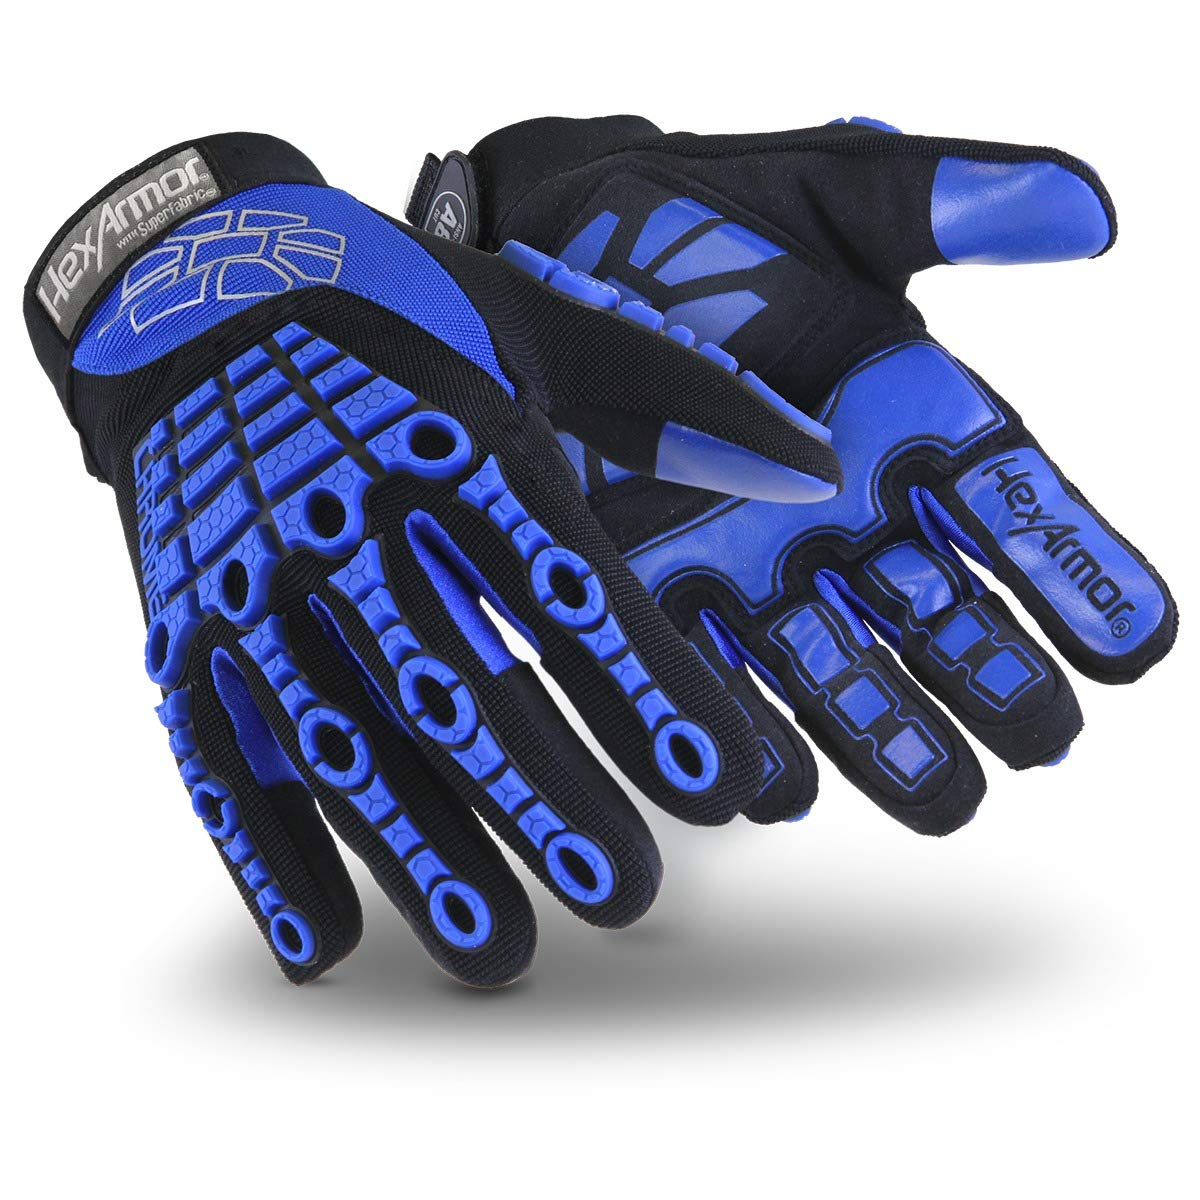 HexArmor Chrome Series 4024 Cut Resistant Safety Work Gloves with Anti Vibration Padded Palm, X-Large